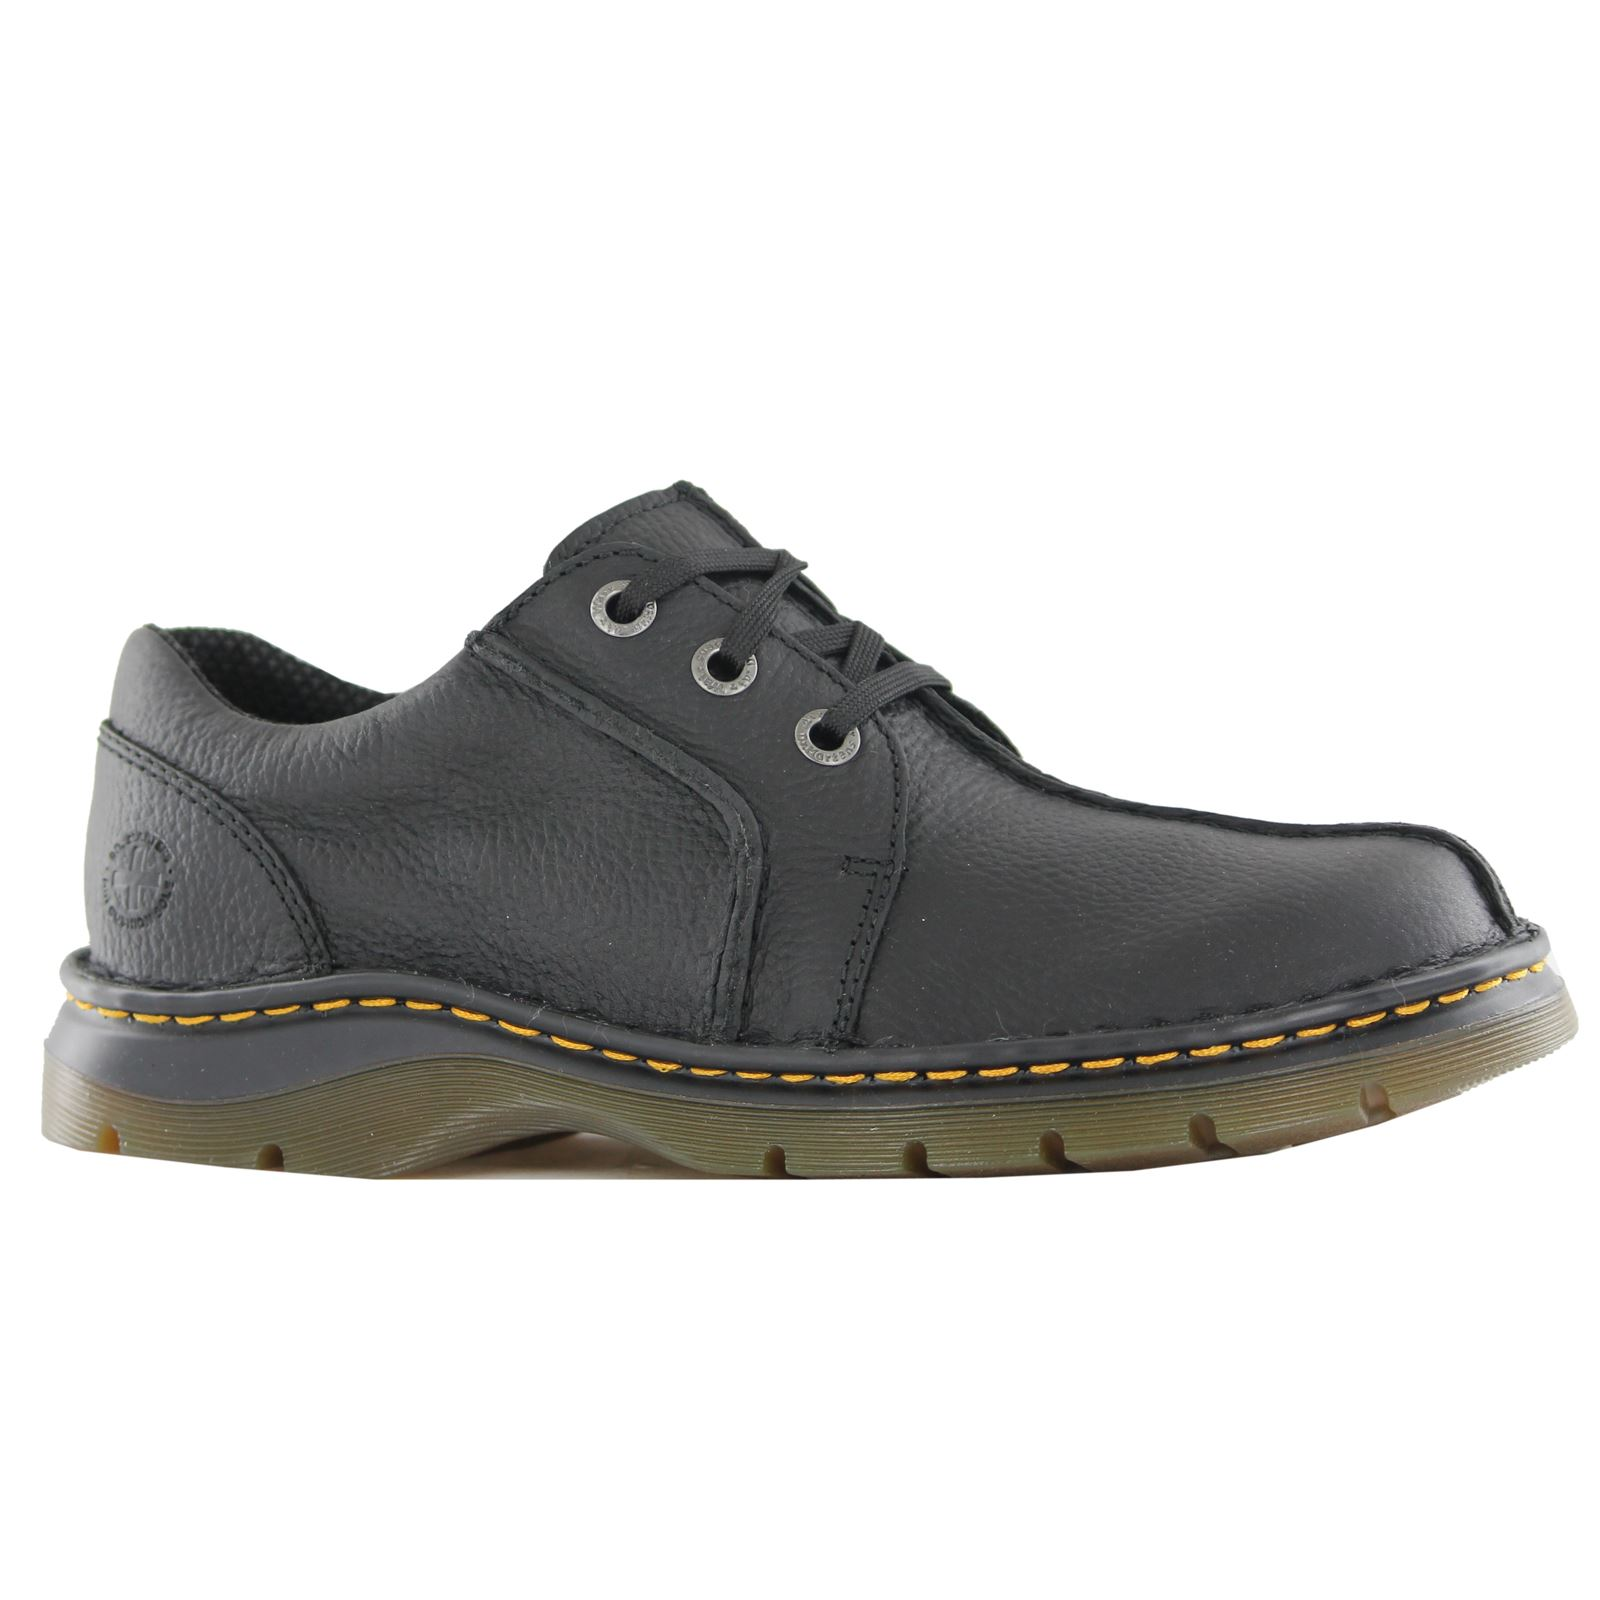 Clarks Shoes Ripley